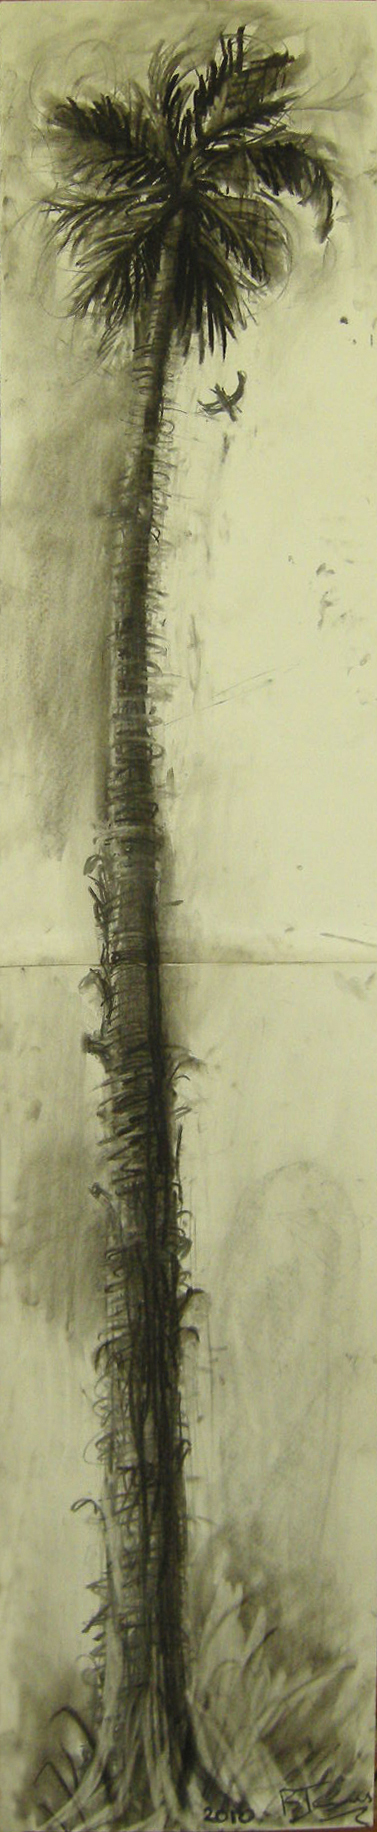 PALM TREE  Charcoal on Paper |29 x 144 cm |Framed  (available)